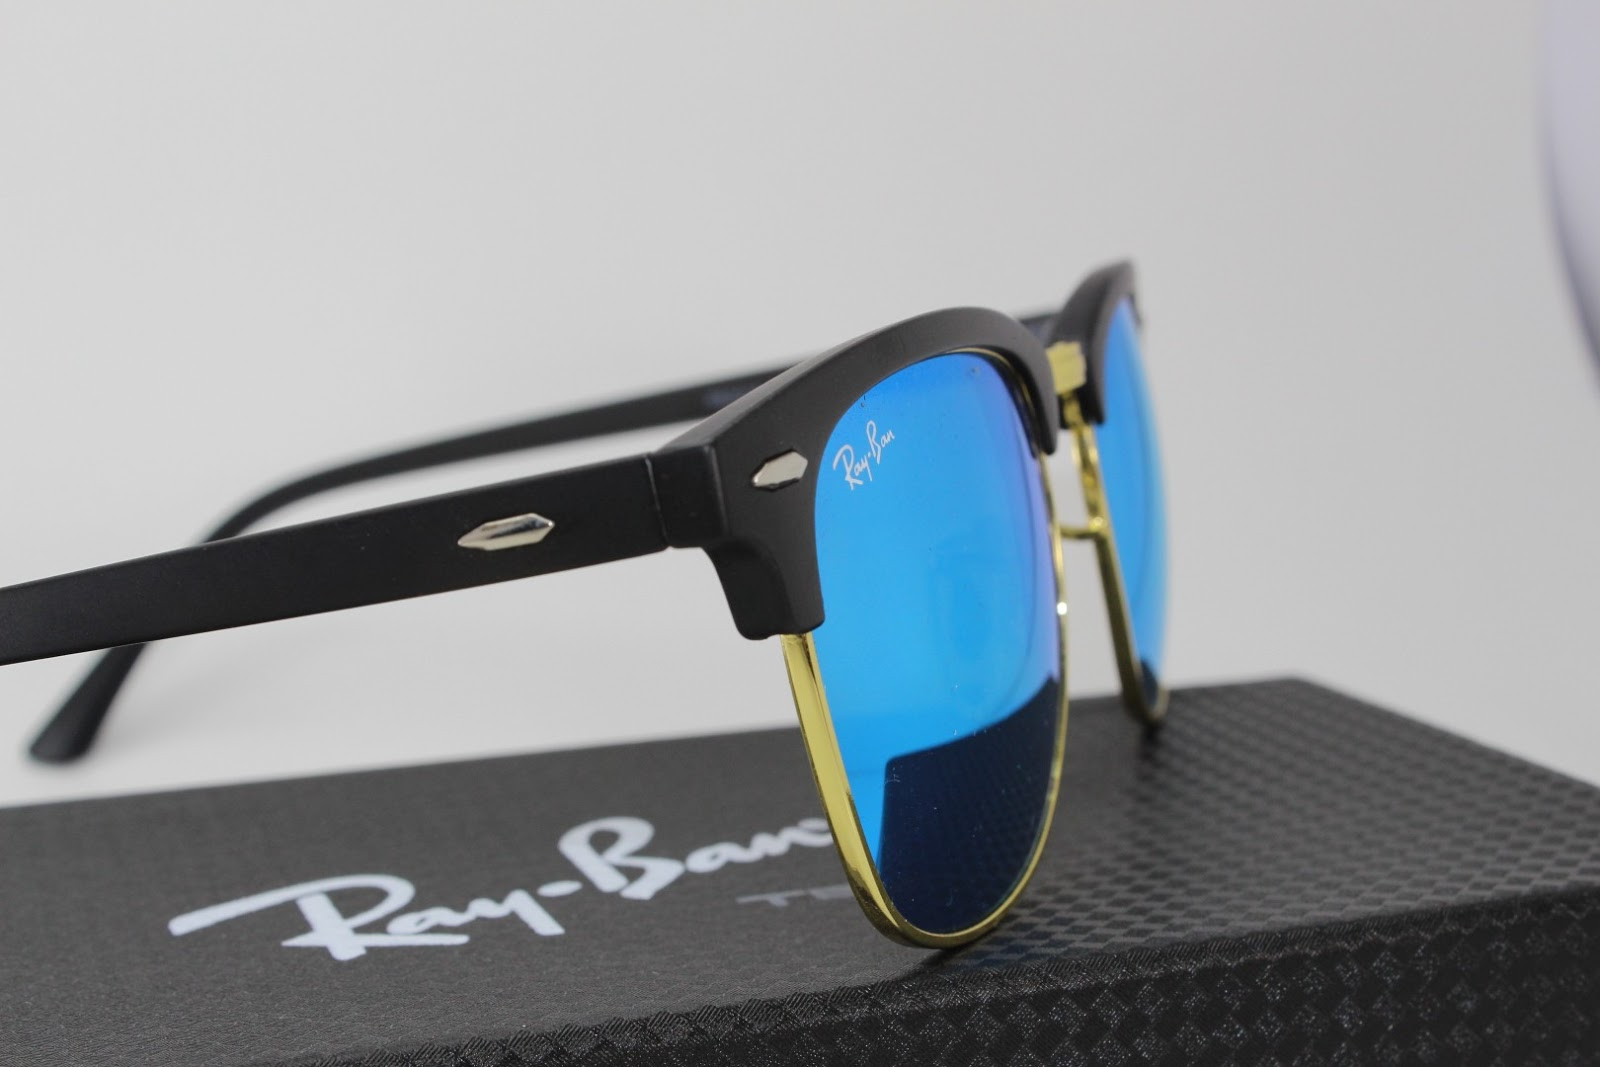 44380af5971 Detailed Specification of Ray-Ban Unisex  Clubmaster RB3016 114517   Sunglasses